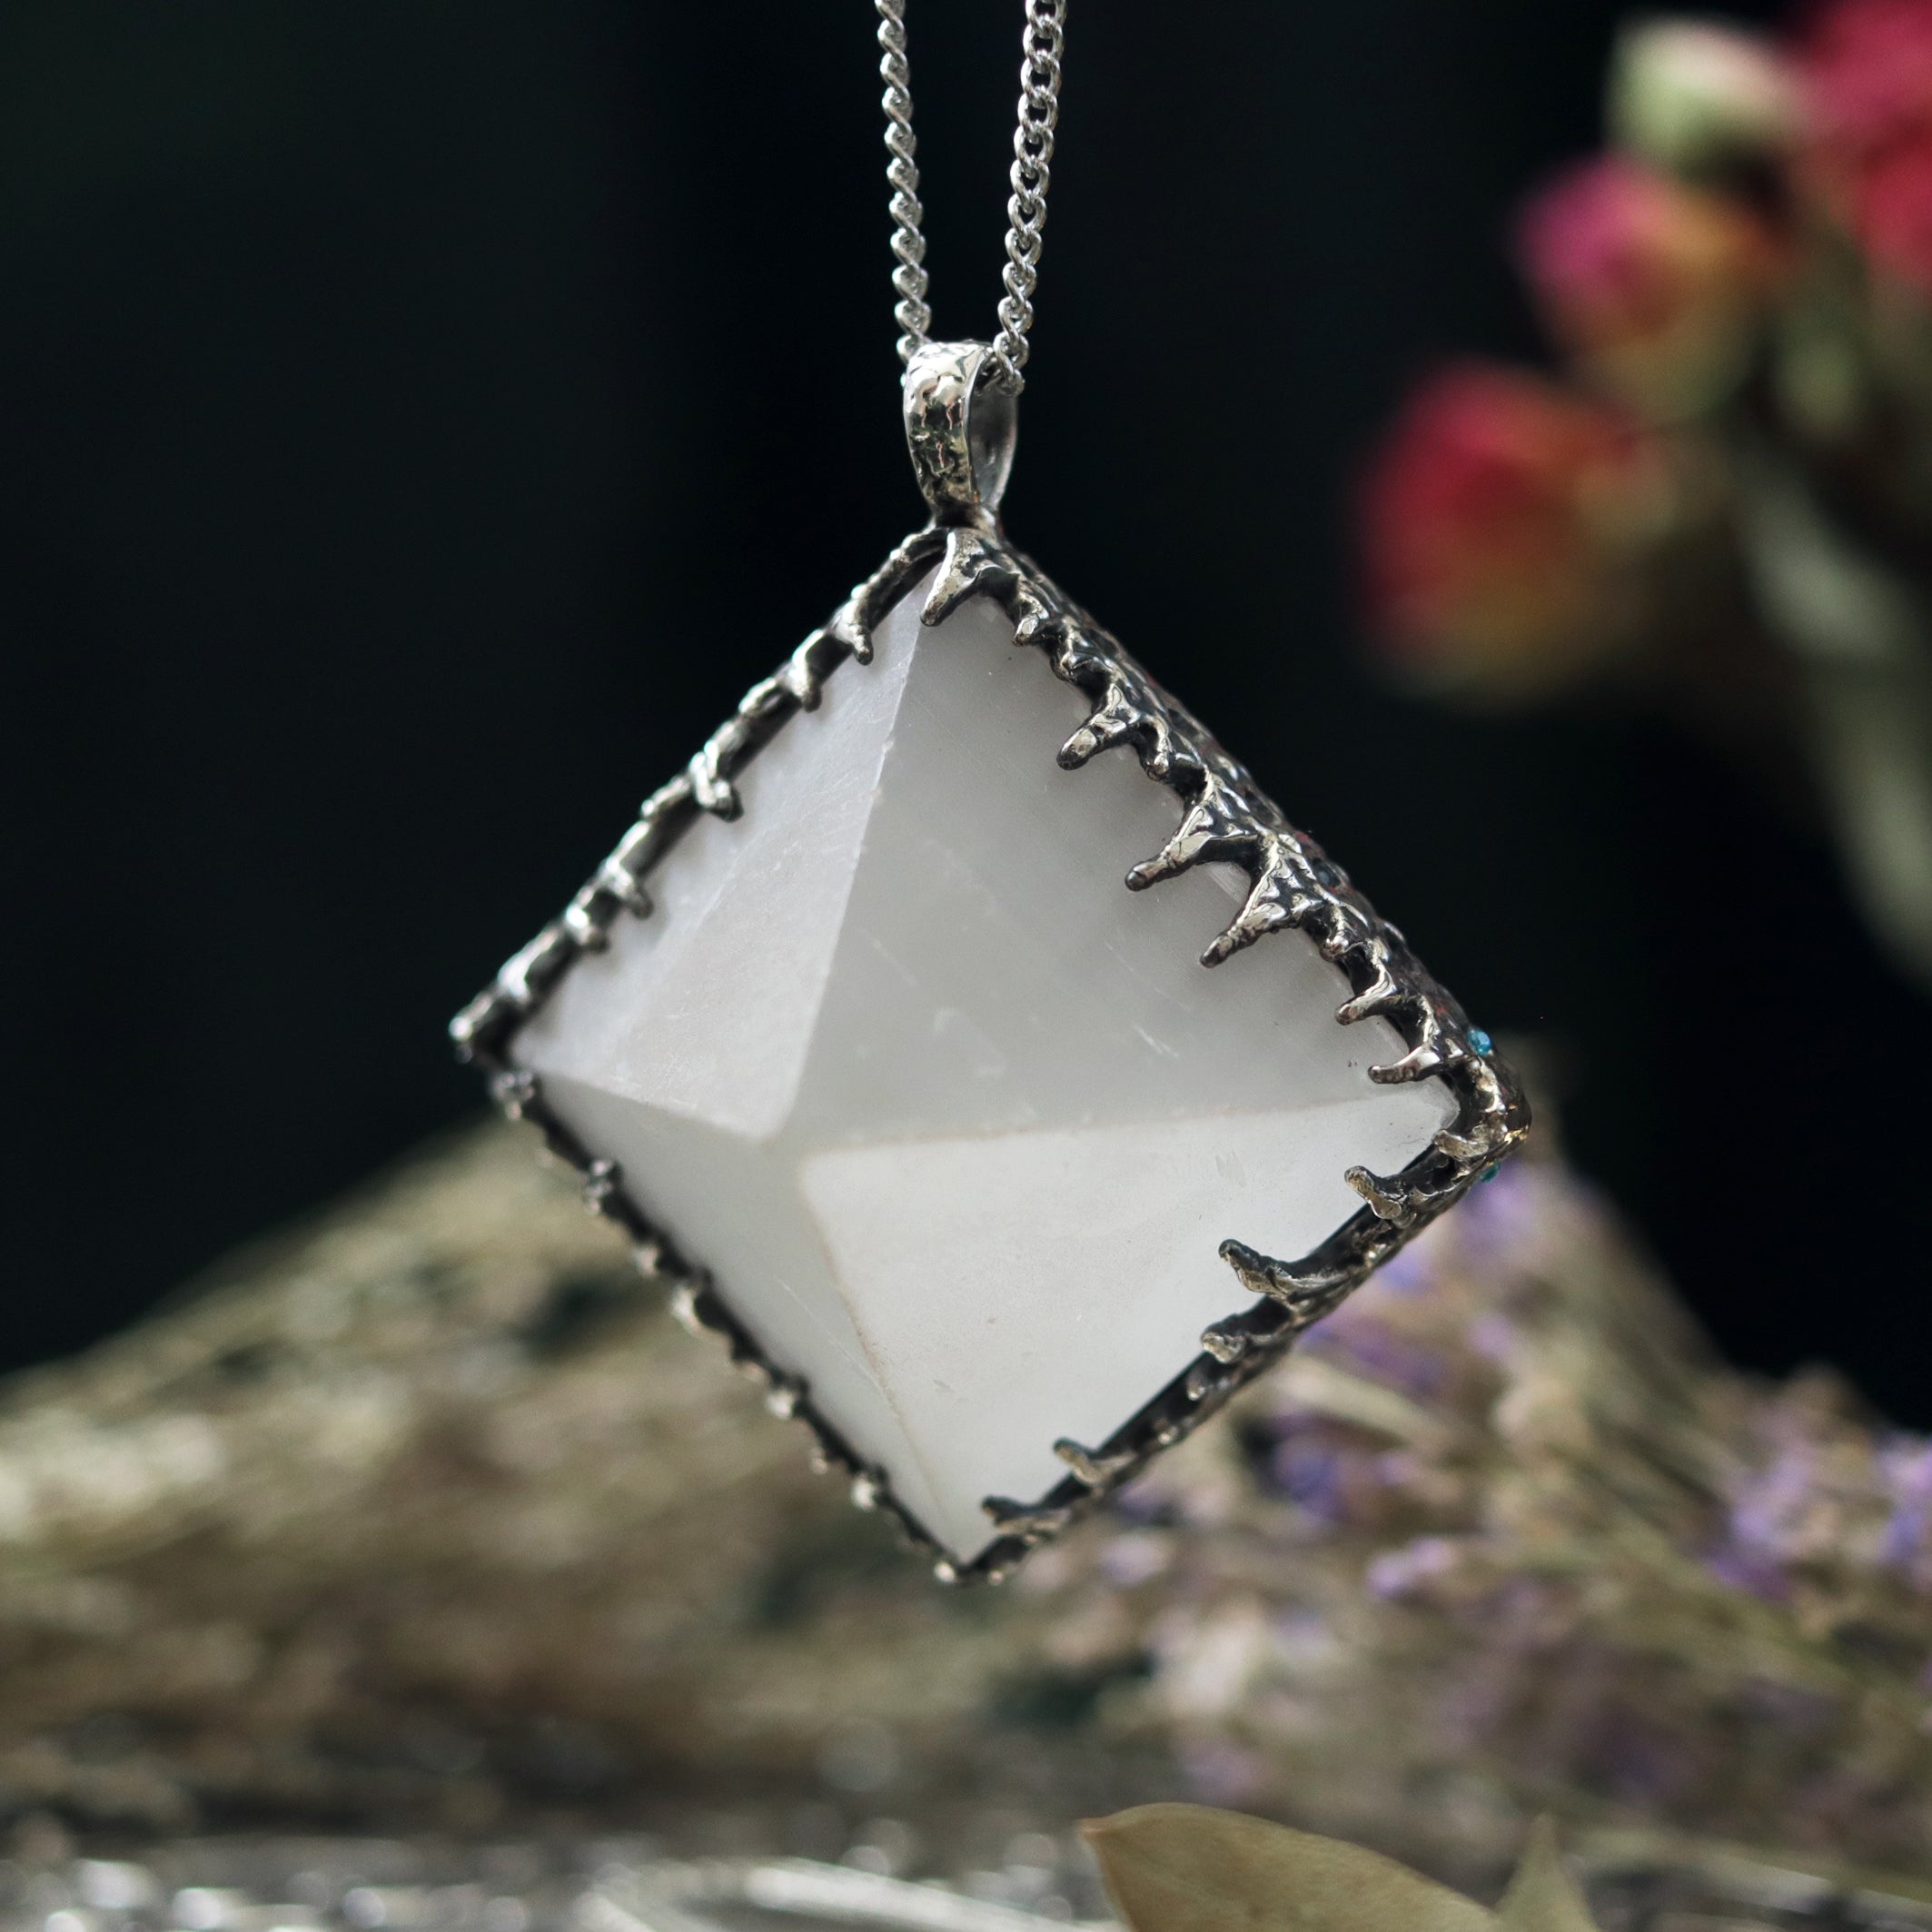 Freyr Selenite Crystal Pyramid Necklace #04 *Special Second